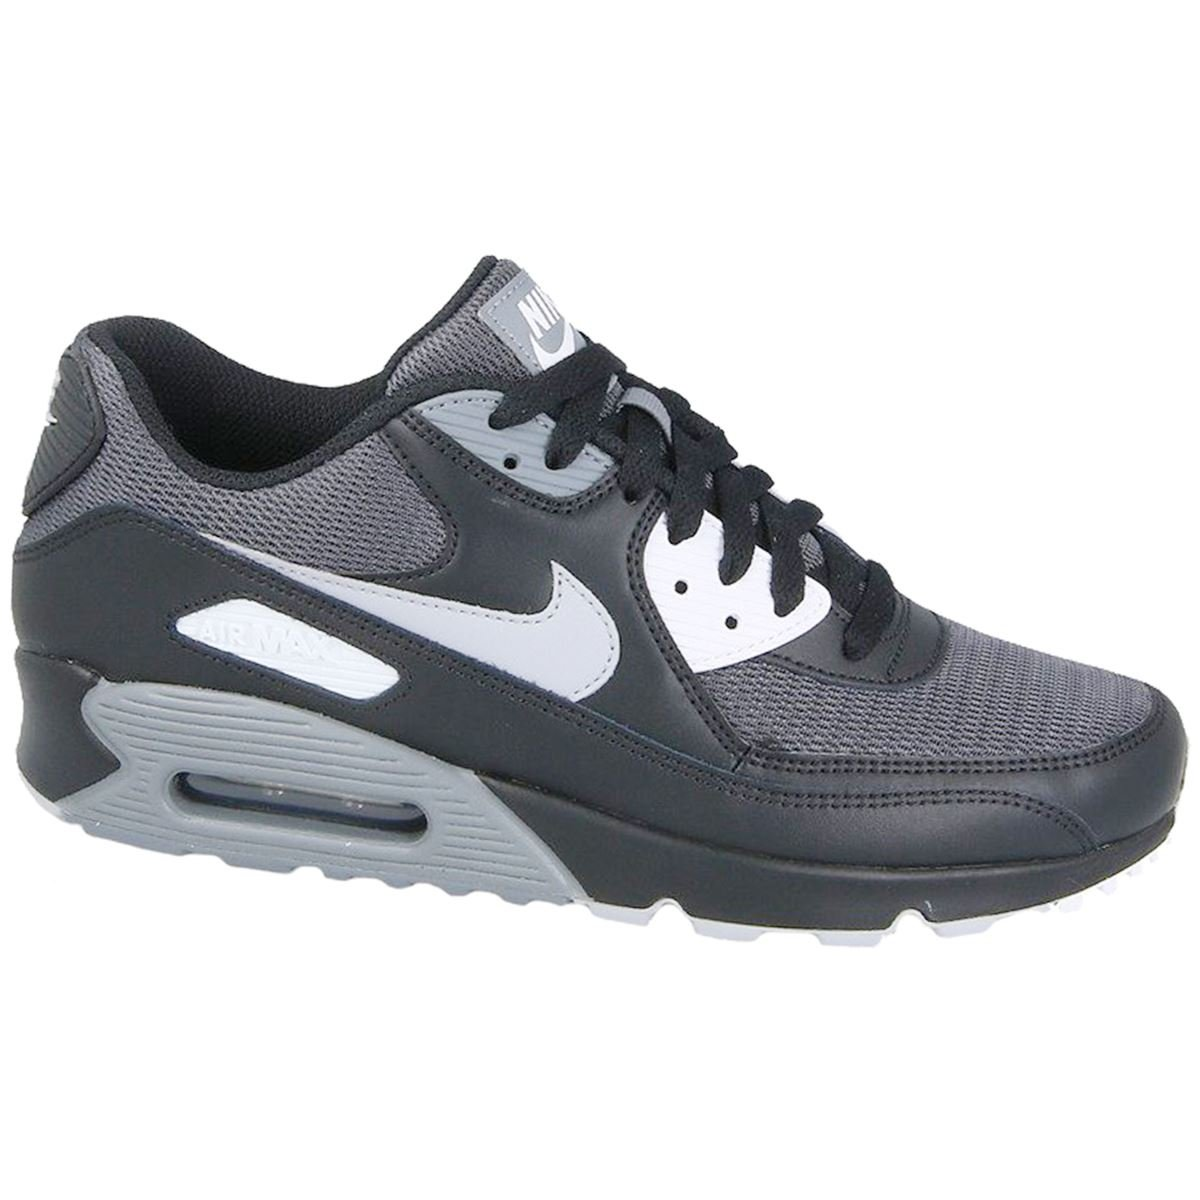 save off bd19c 2a42d Galleon - NIKE Mens Air Max 90 Essential Running Shoes Black Wolf Grey Dark  Grey AJ1285-003 Size 10